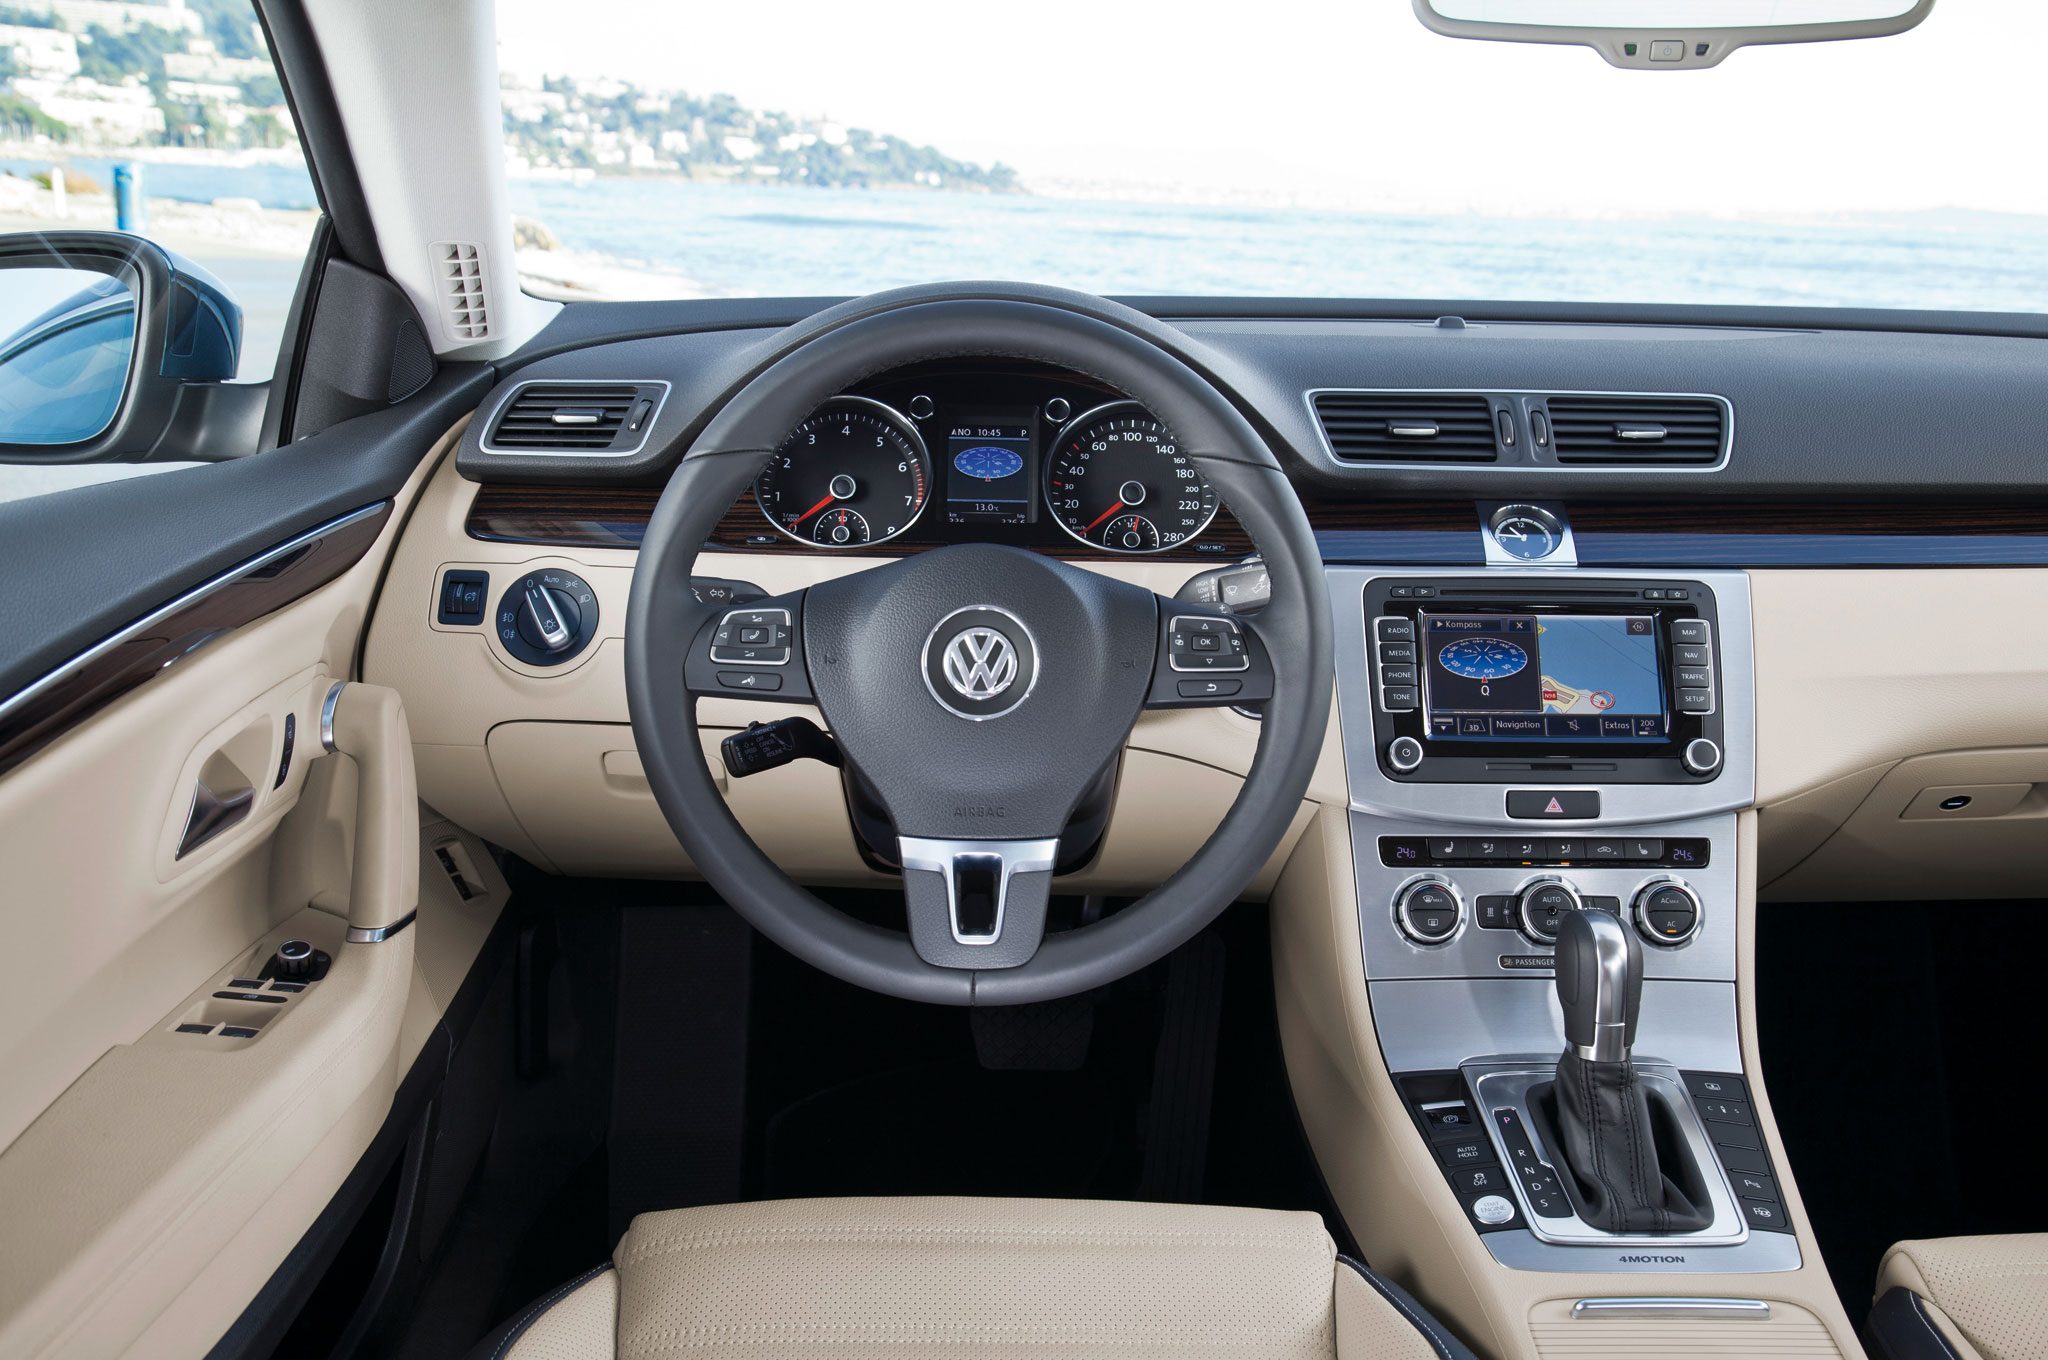 drive cc review magazine dsg is riding car volkswagen reviews a vw smooth relaxing the by tdi